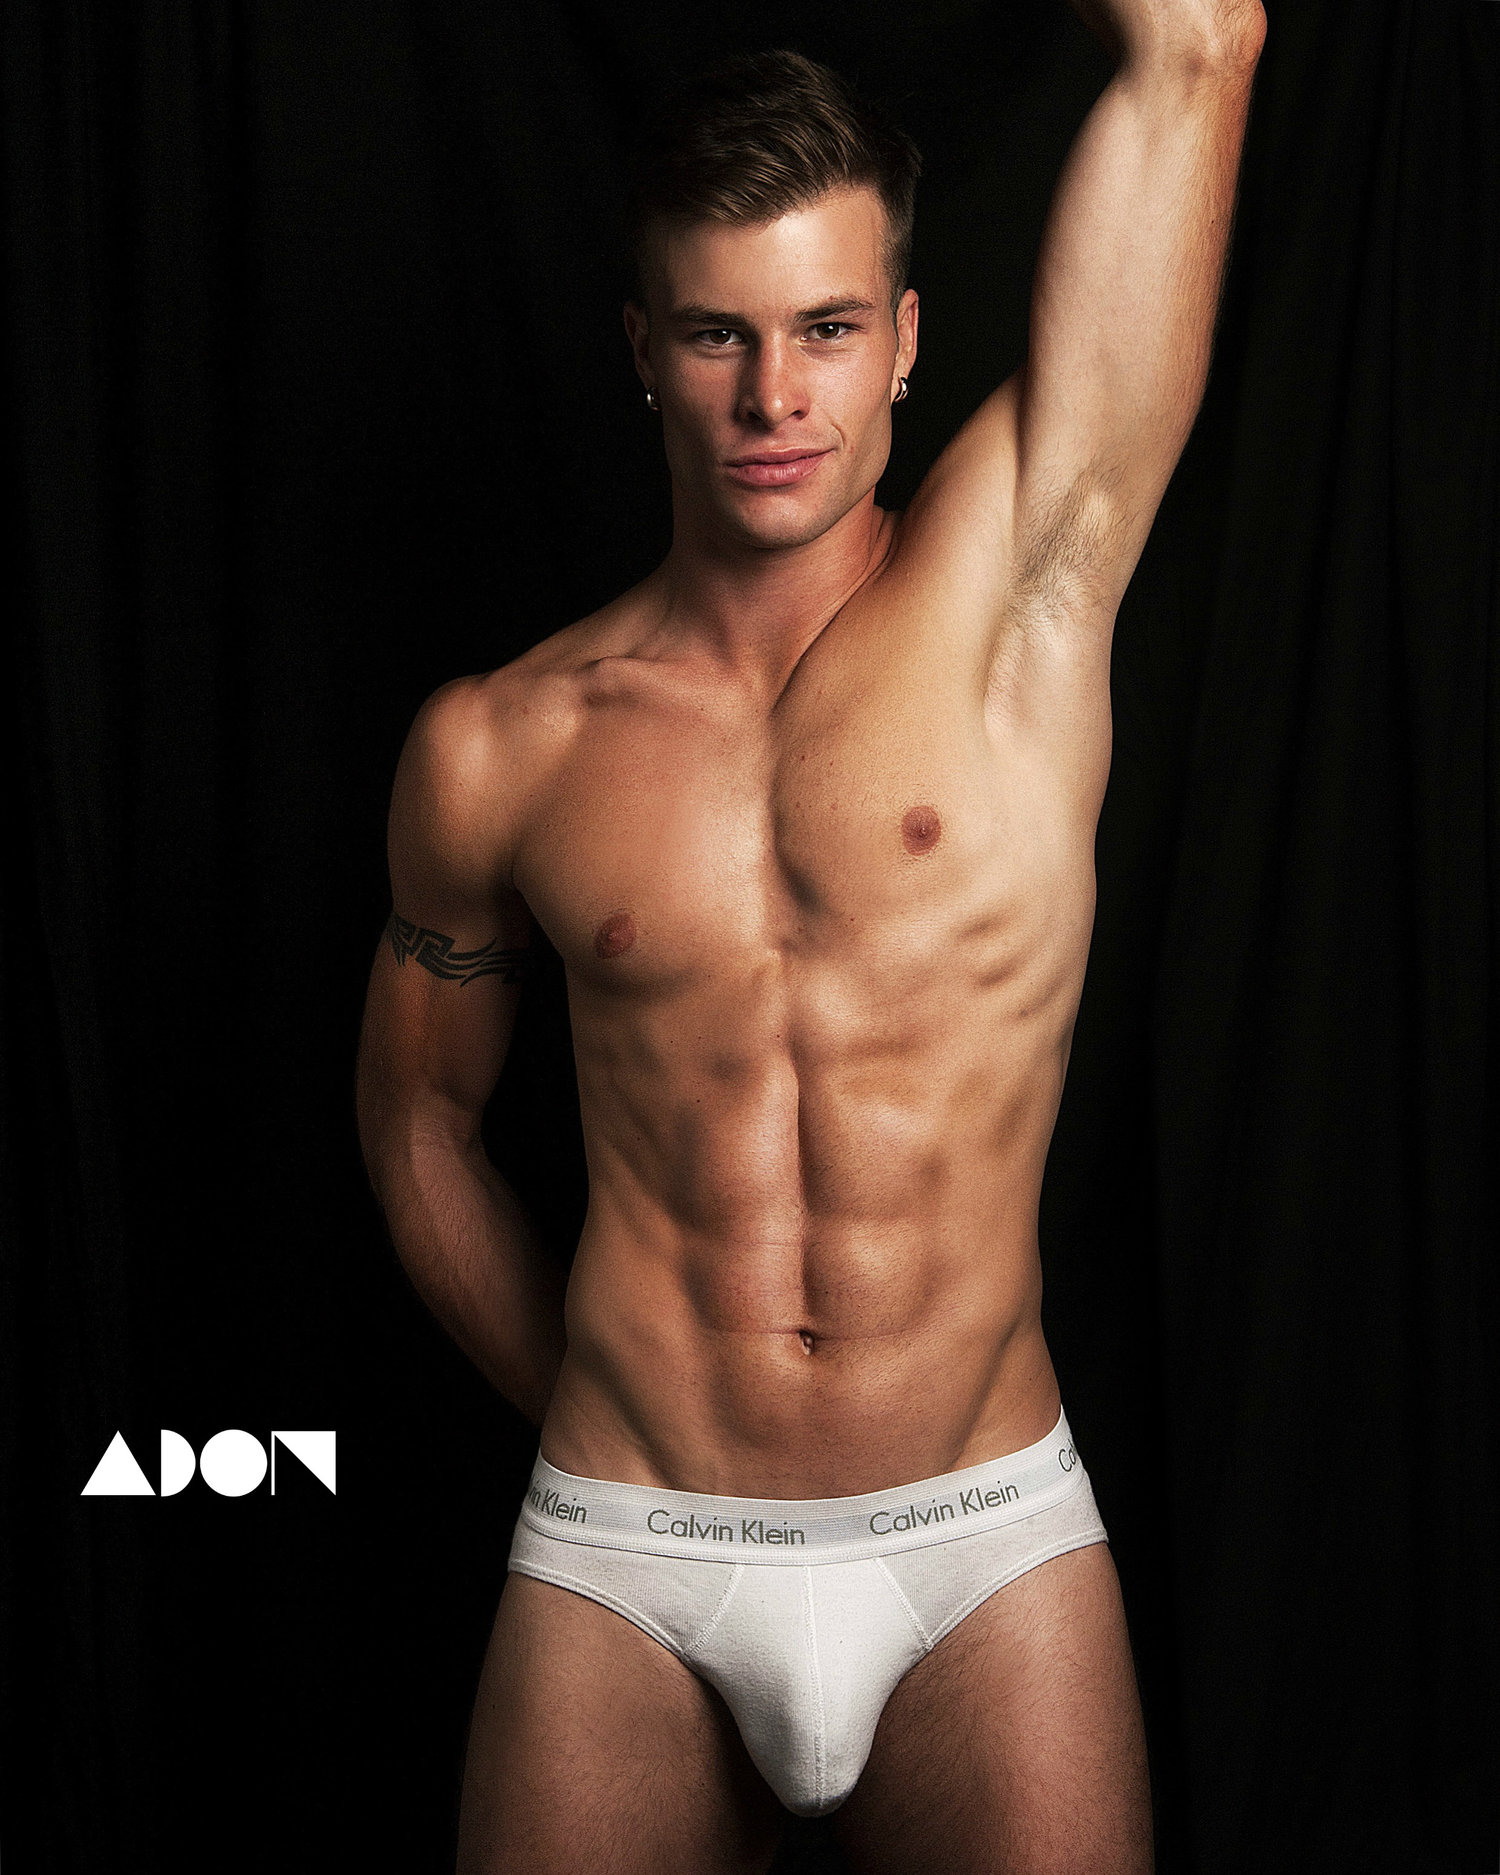 Adon Exclusive: Model Marco Moro By Daniel Rodrigues